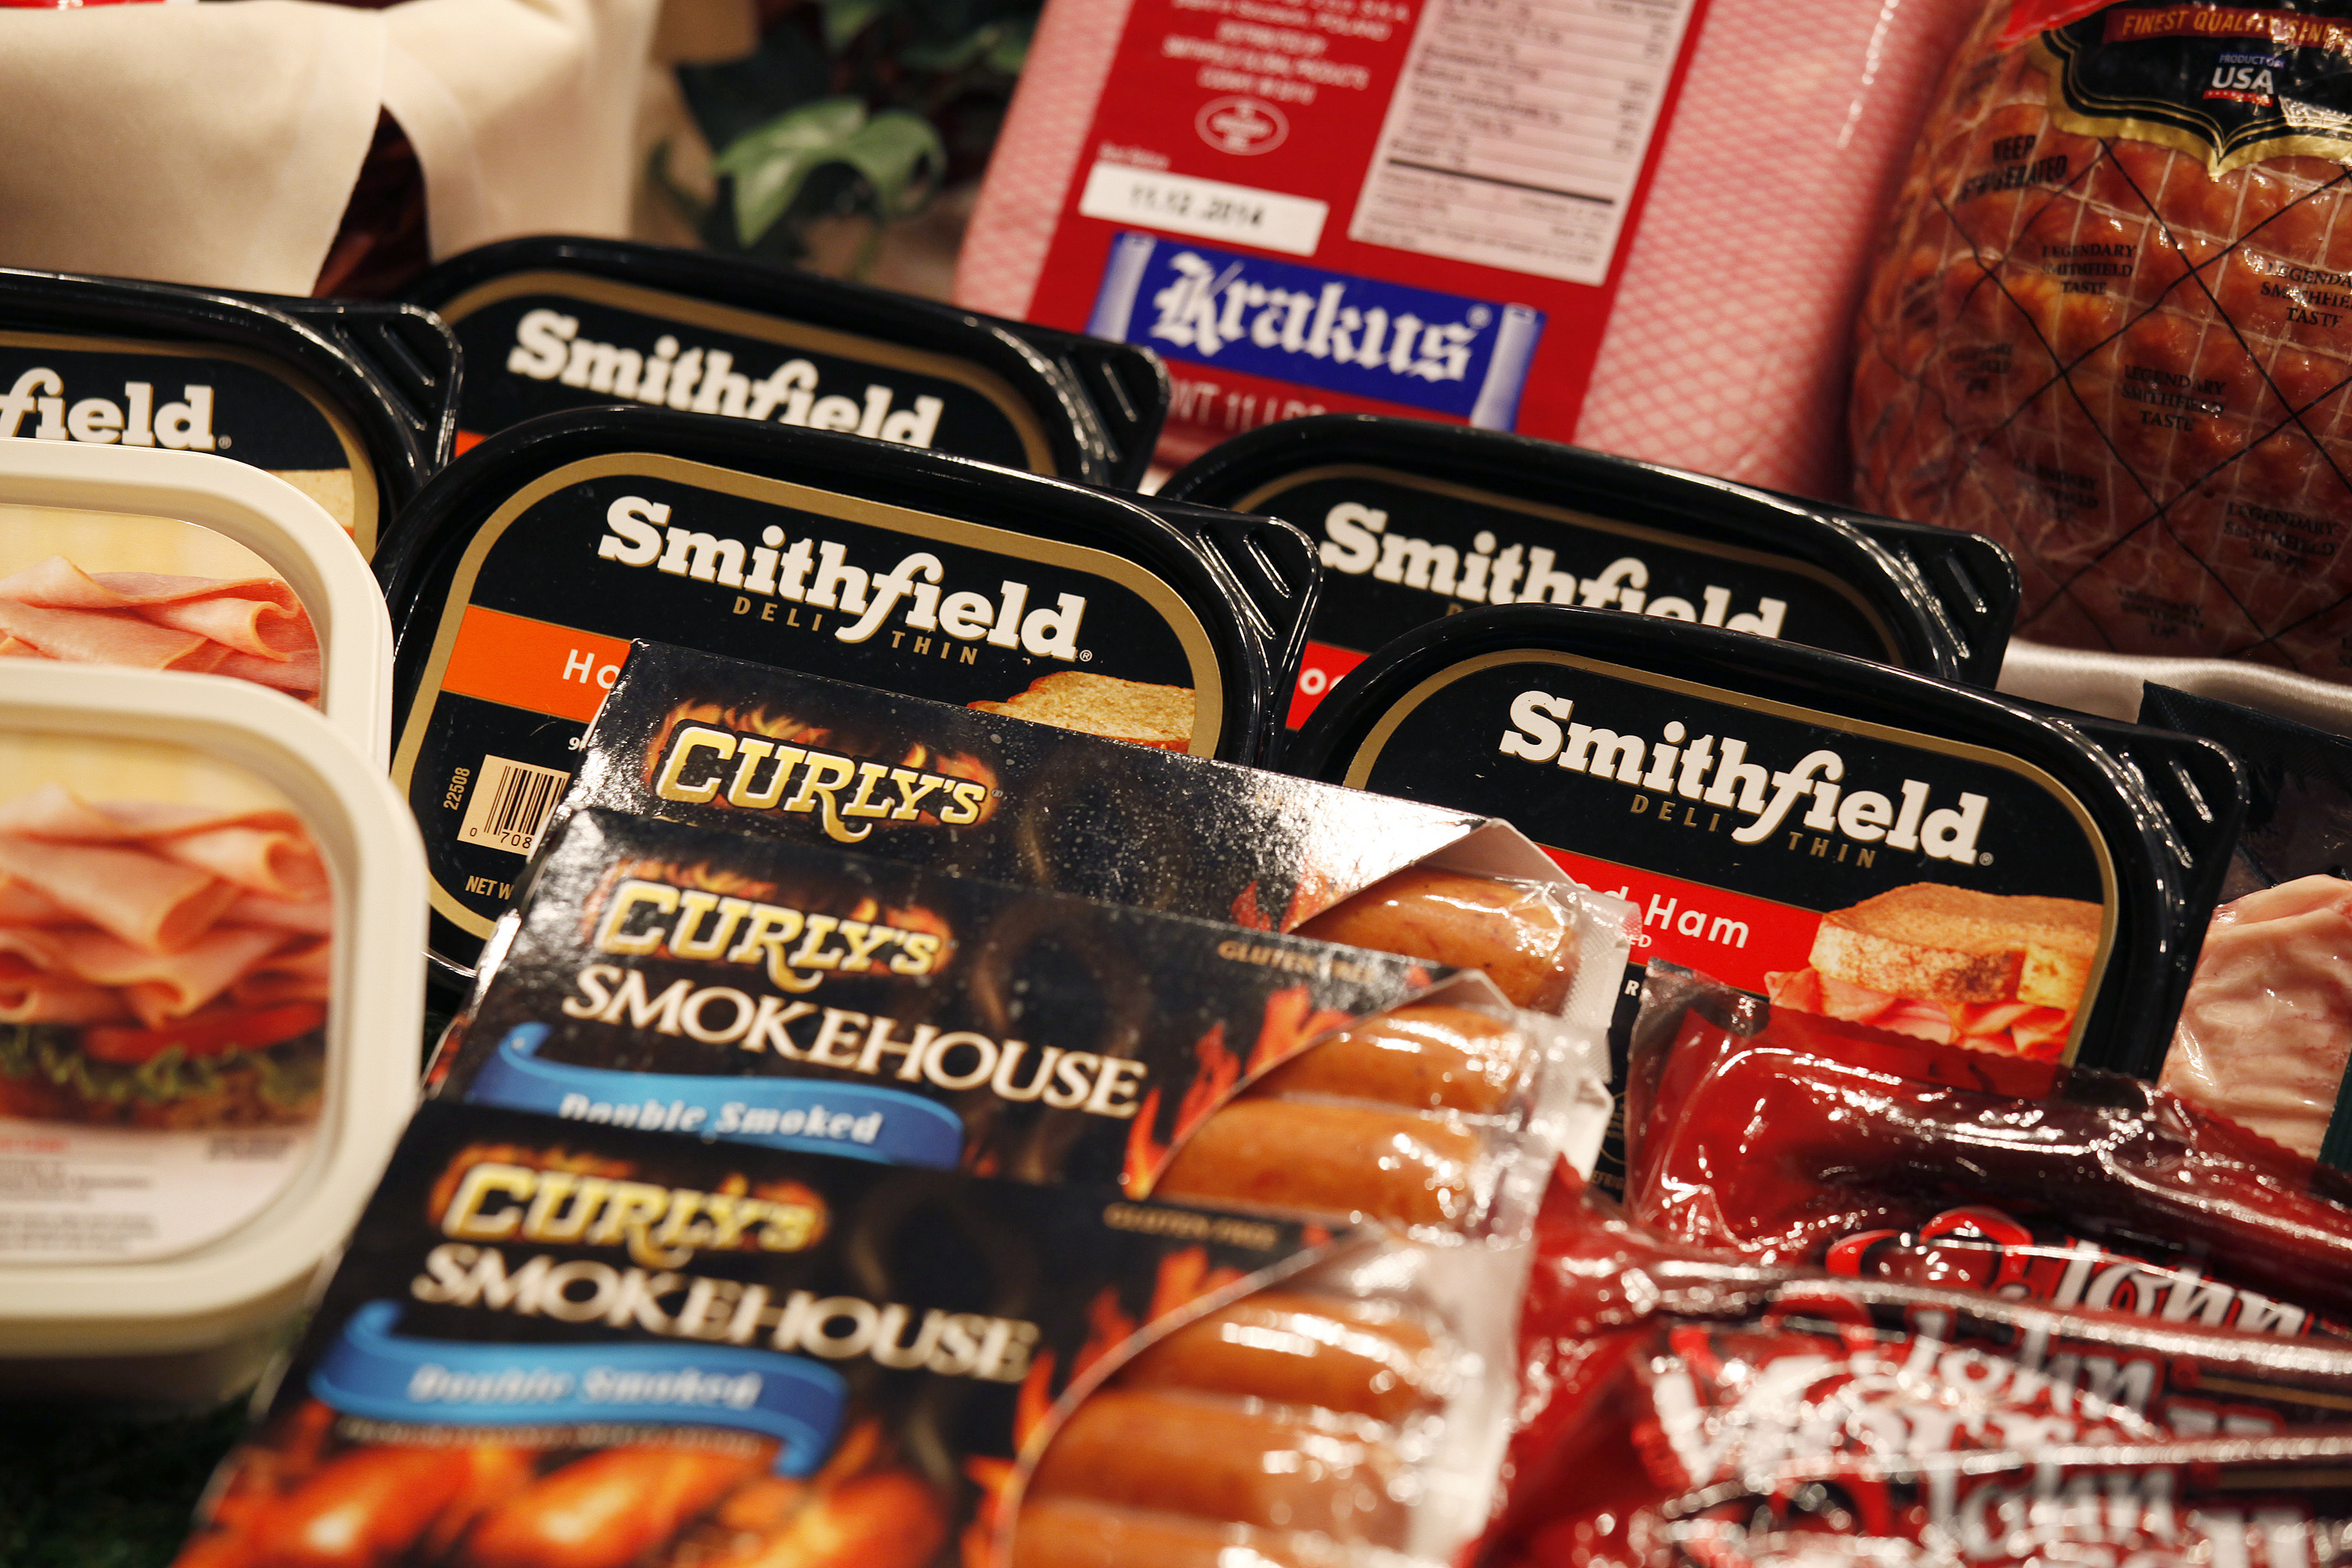 Some of the products of Smithfield Foods